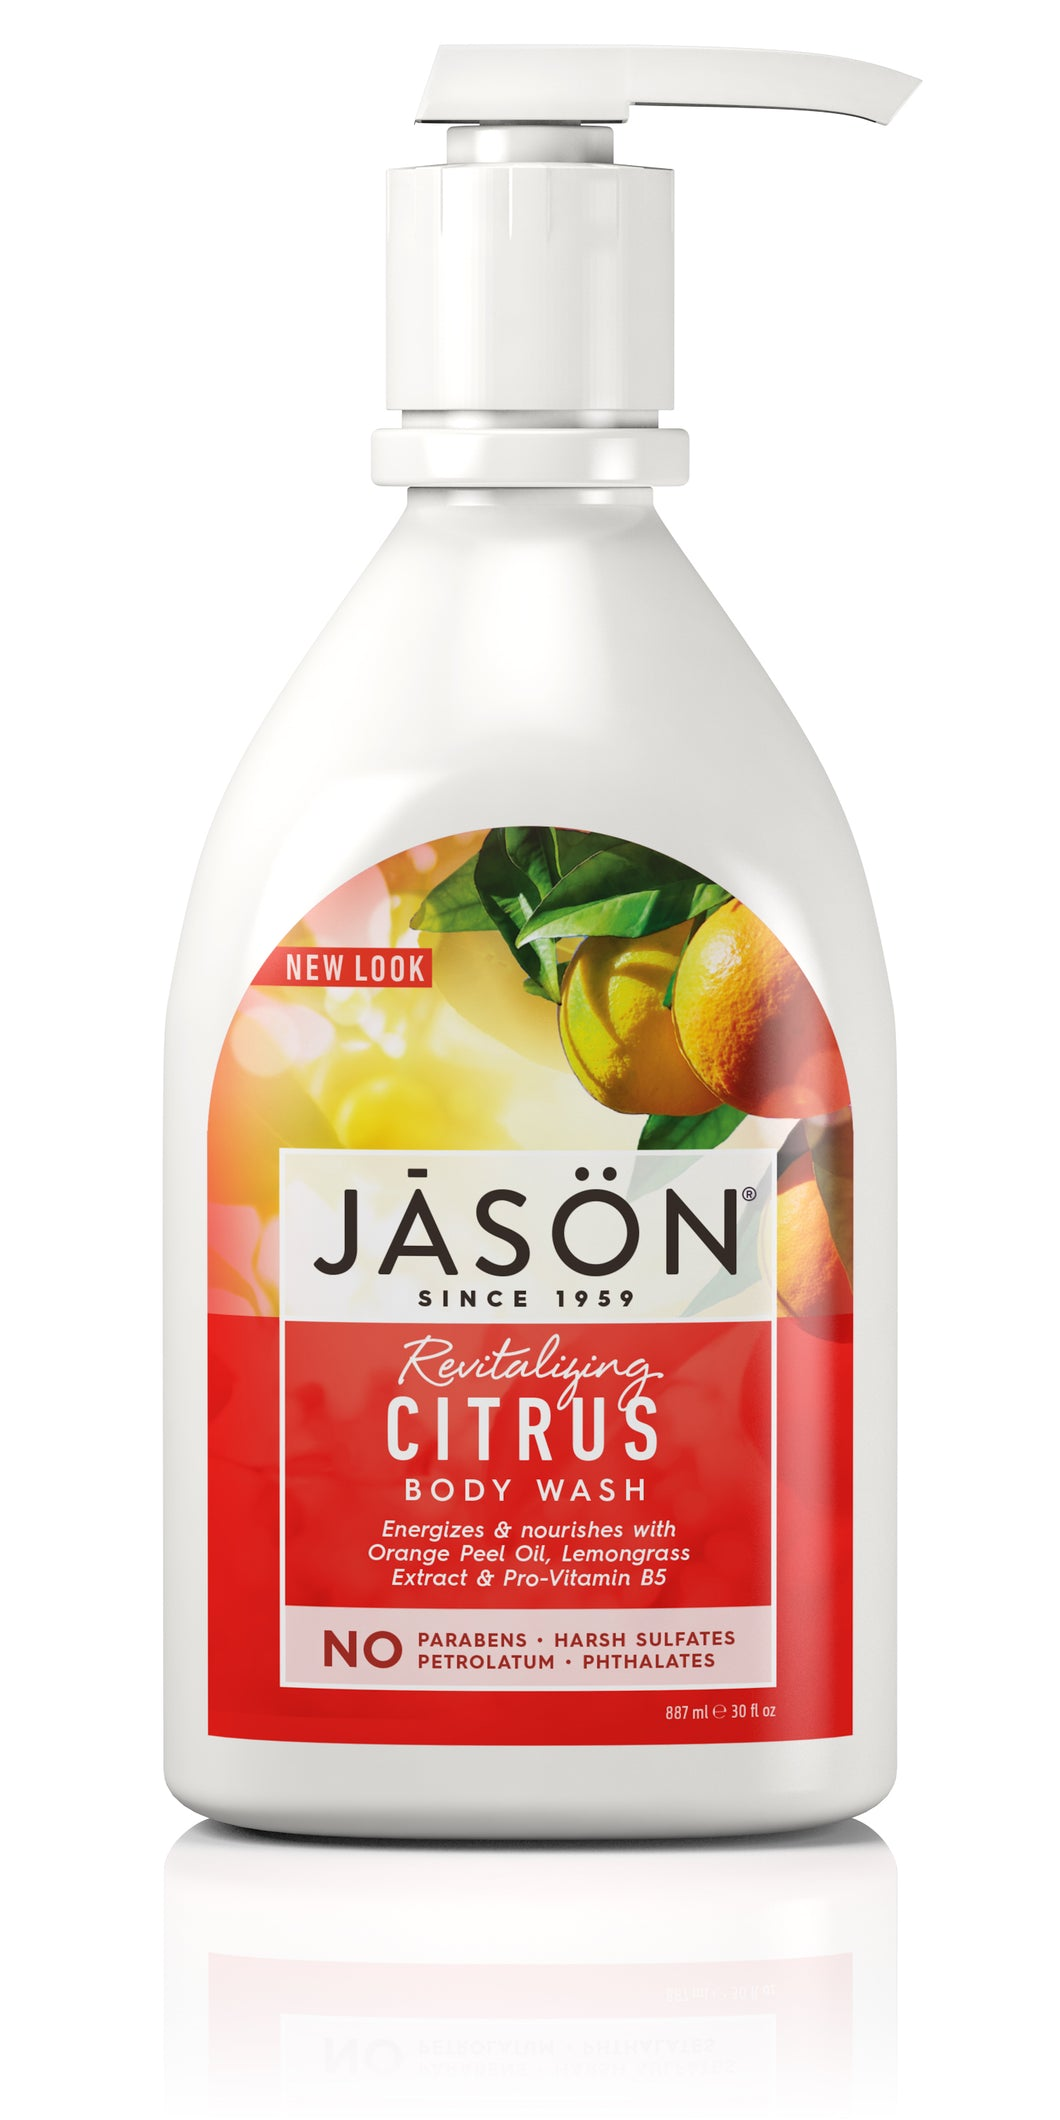 Revitalizing Citrus Body Wash